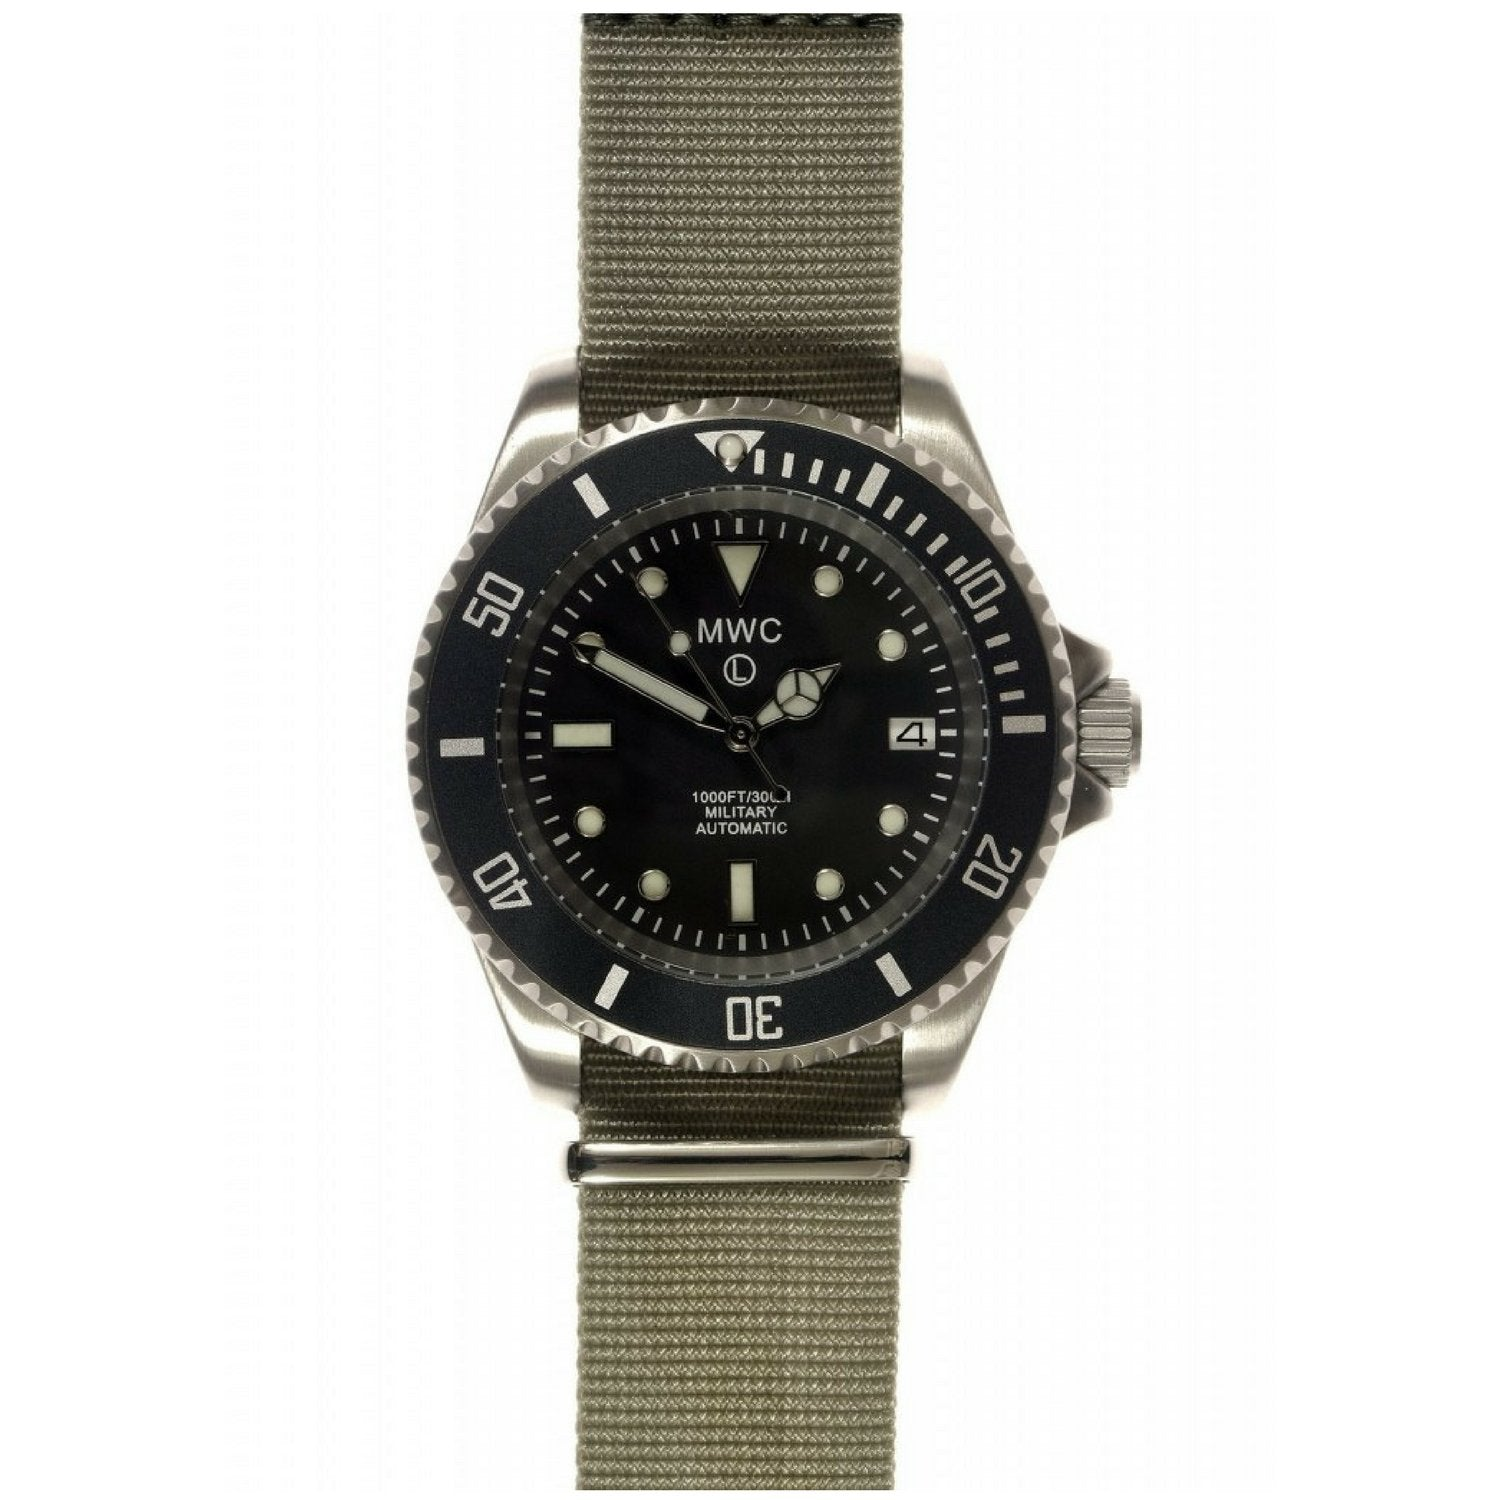 MWC Automatic Military Divers Watch, Sapphire Crystal and Ceramic Bezel on NATO